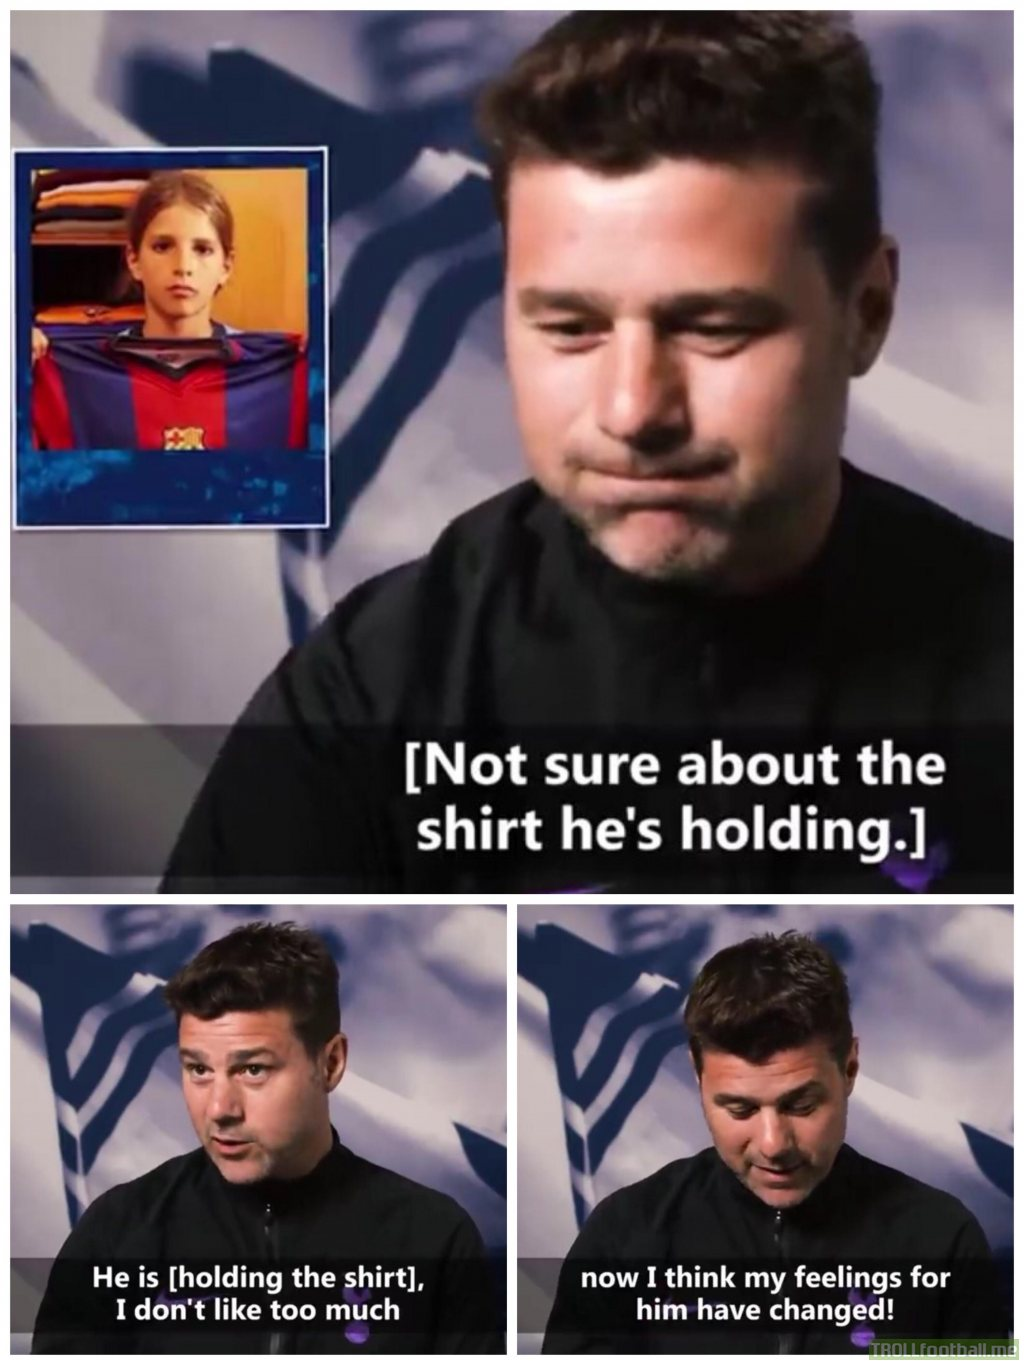 Pochettino after seeing Erik Lamela holding a Barcelona shirt when he was younger.